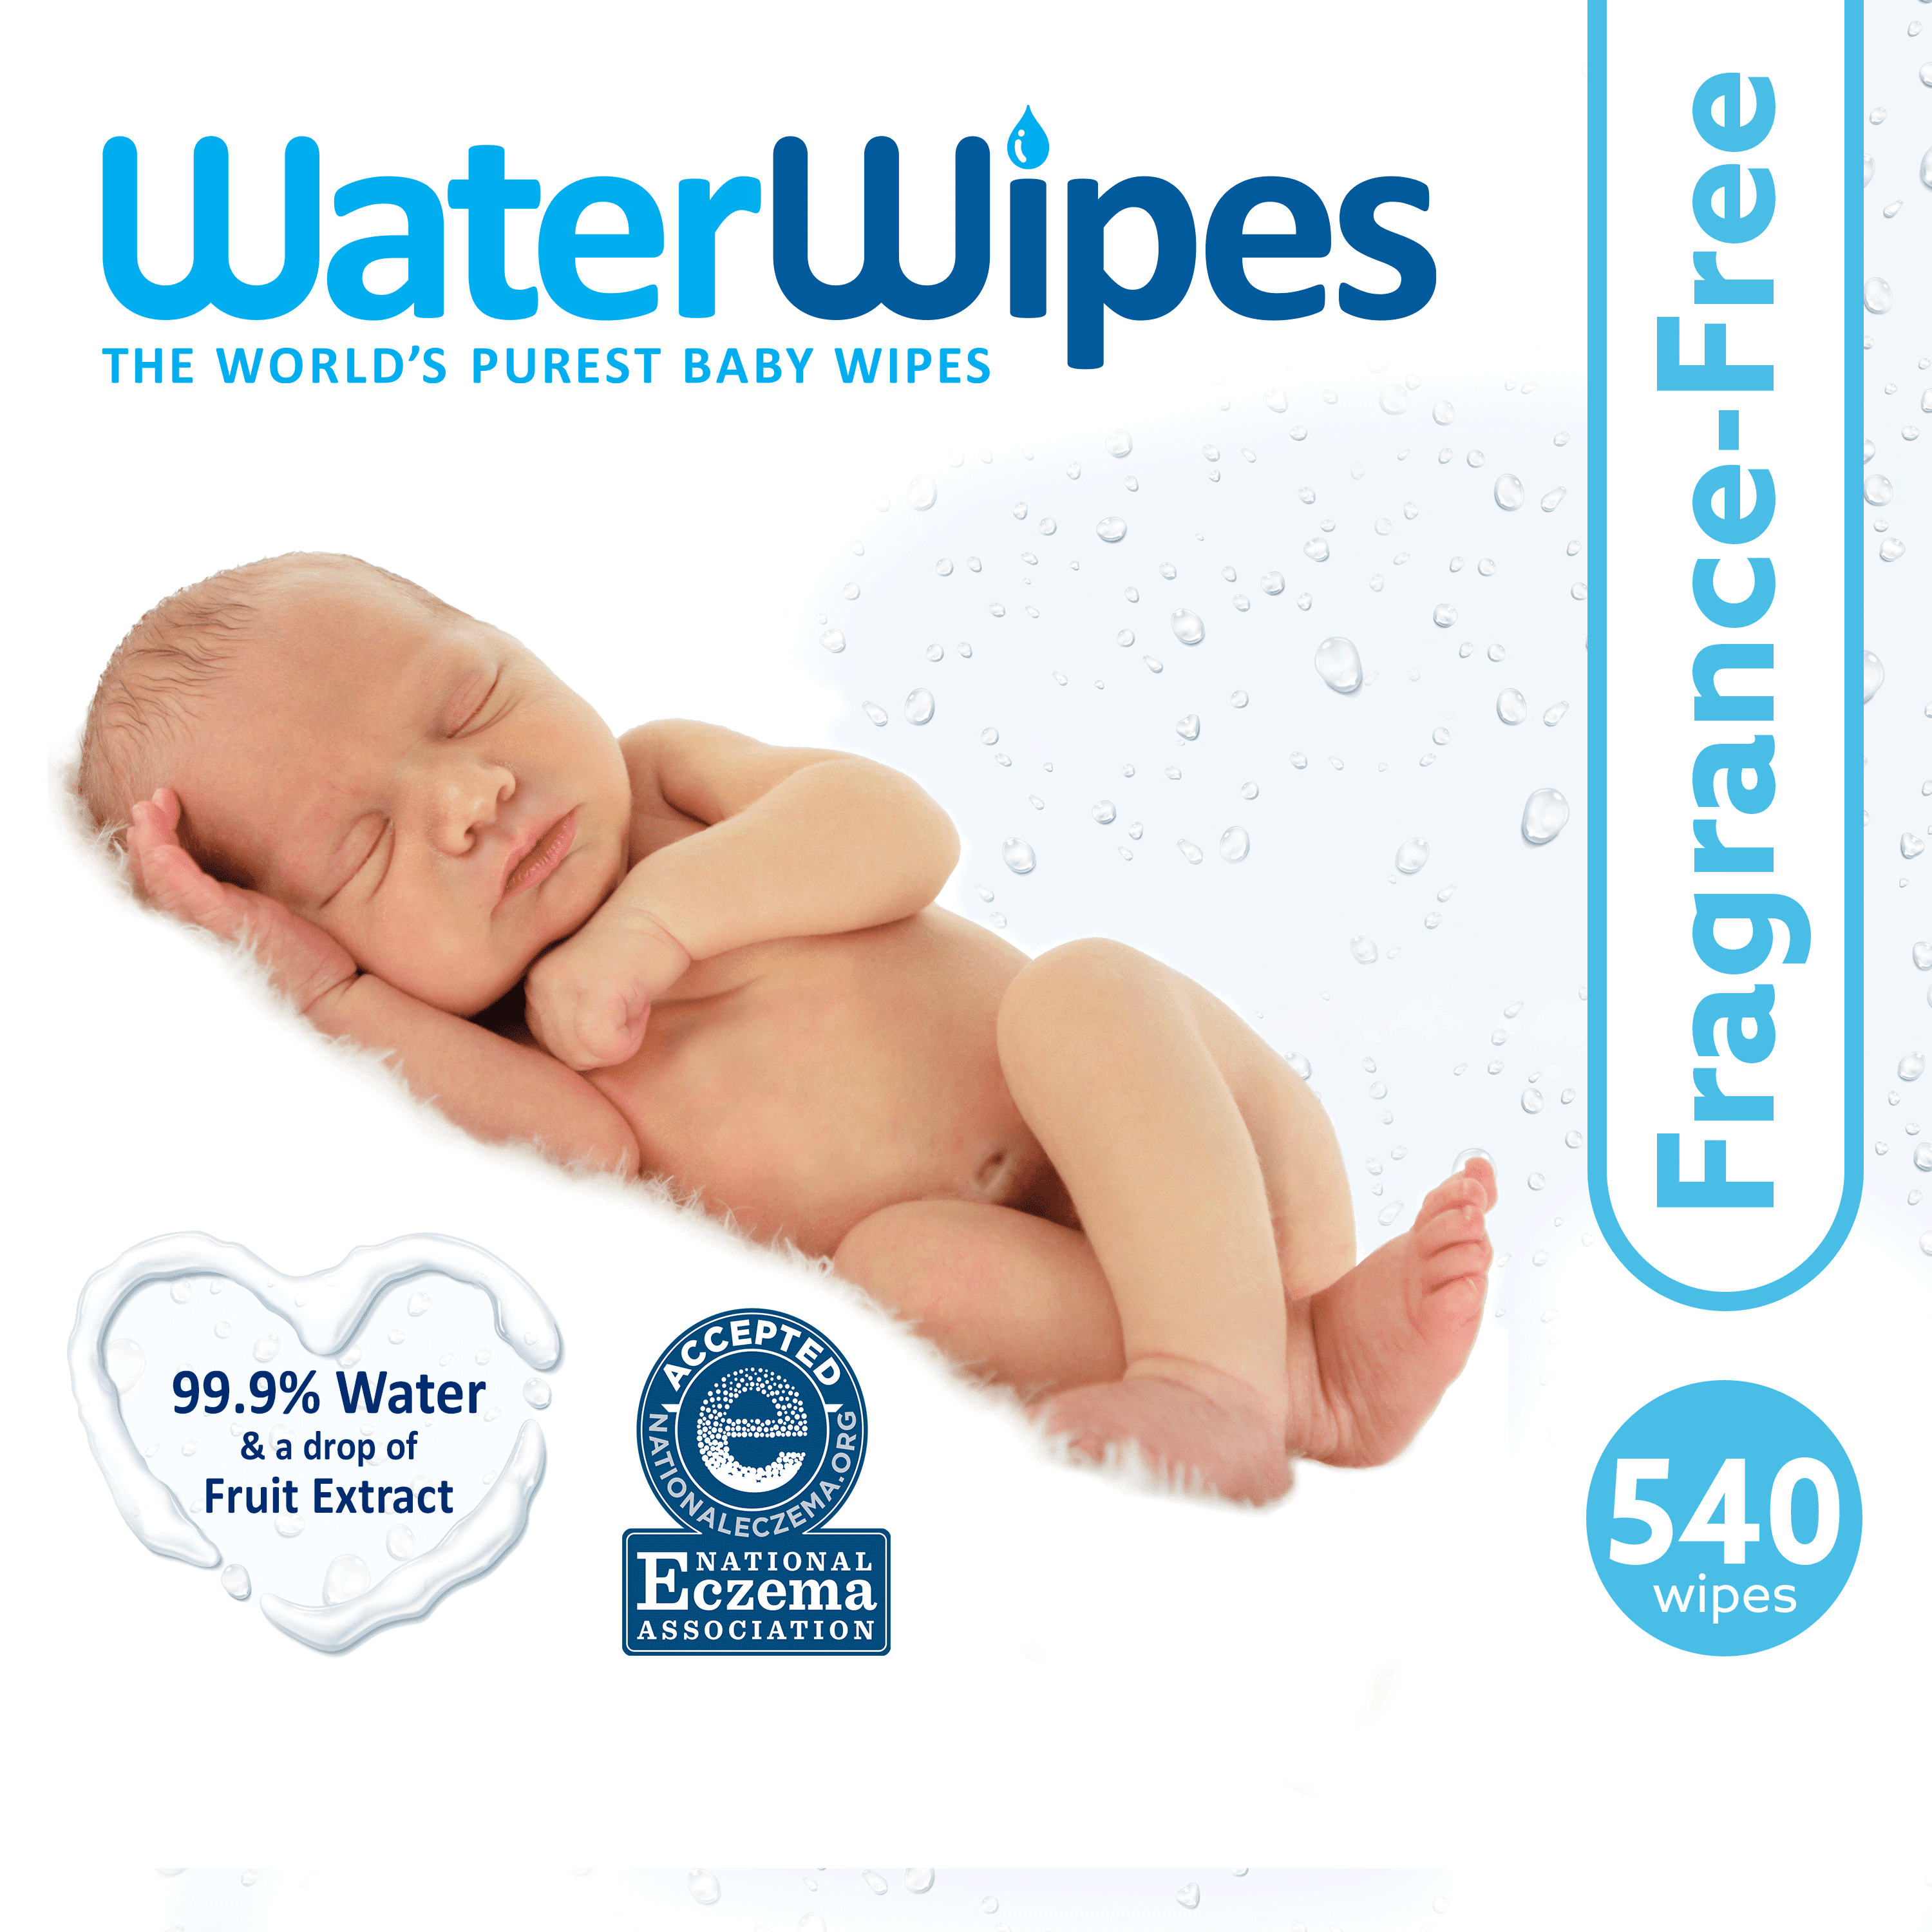 4 X WATER WIPES THE WORLD/'S PUREST BABY WIPES CHEMICAL FREE NATURAL 99.9/% WATER